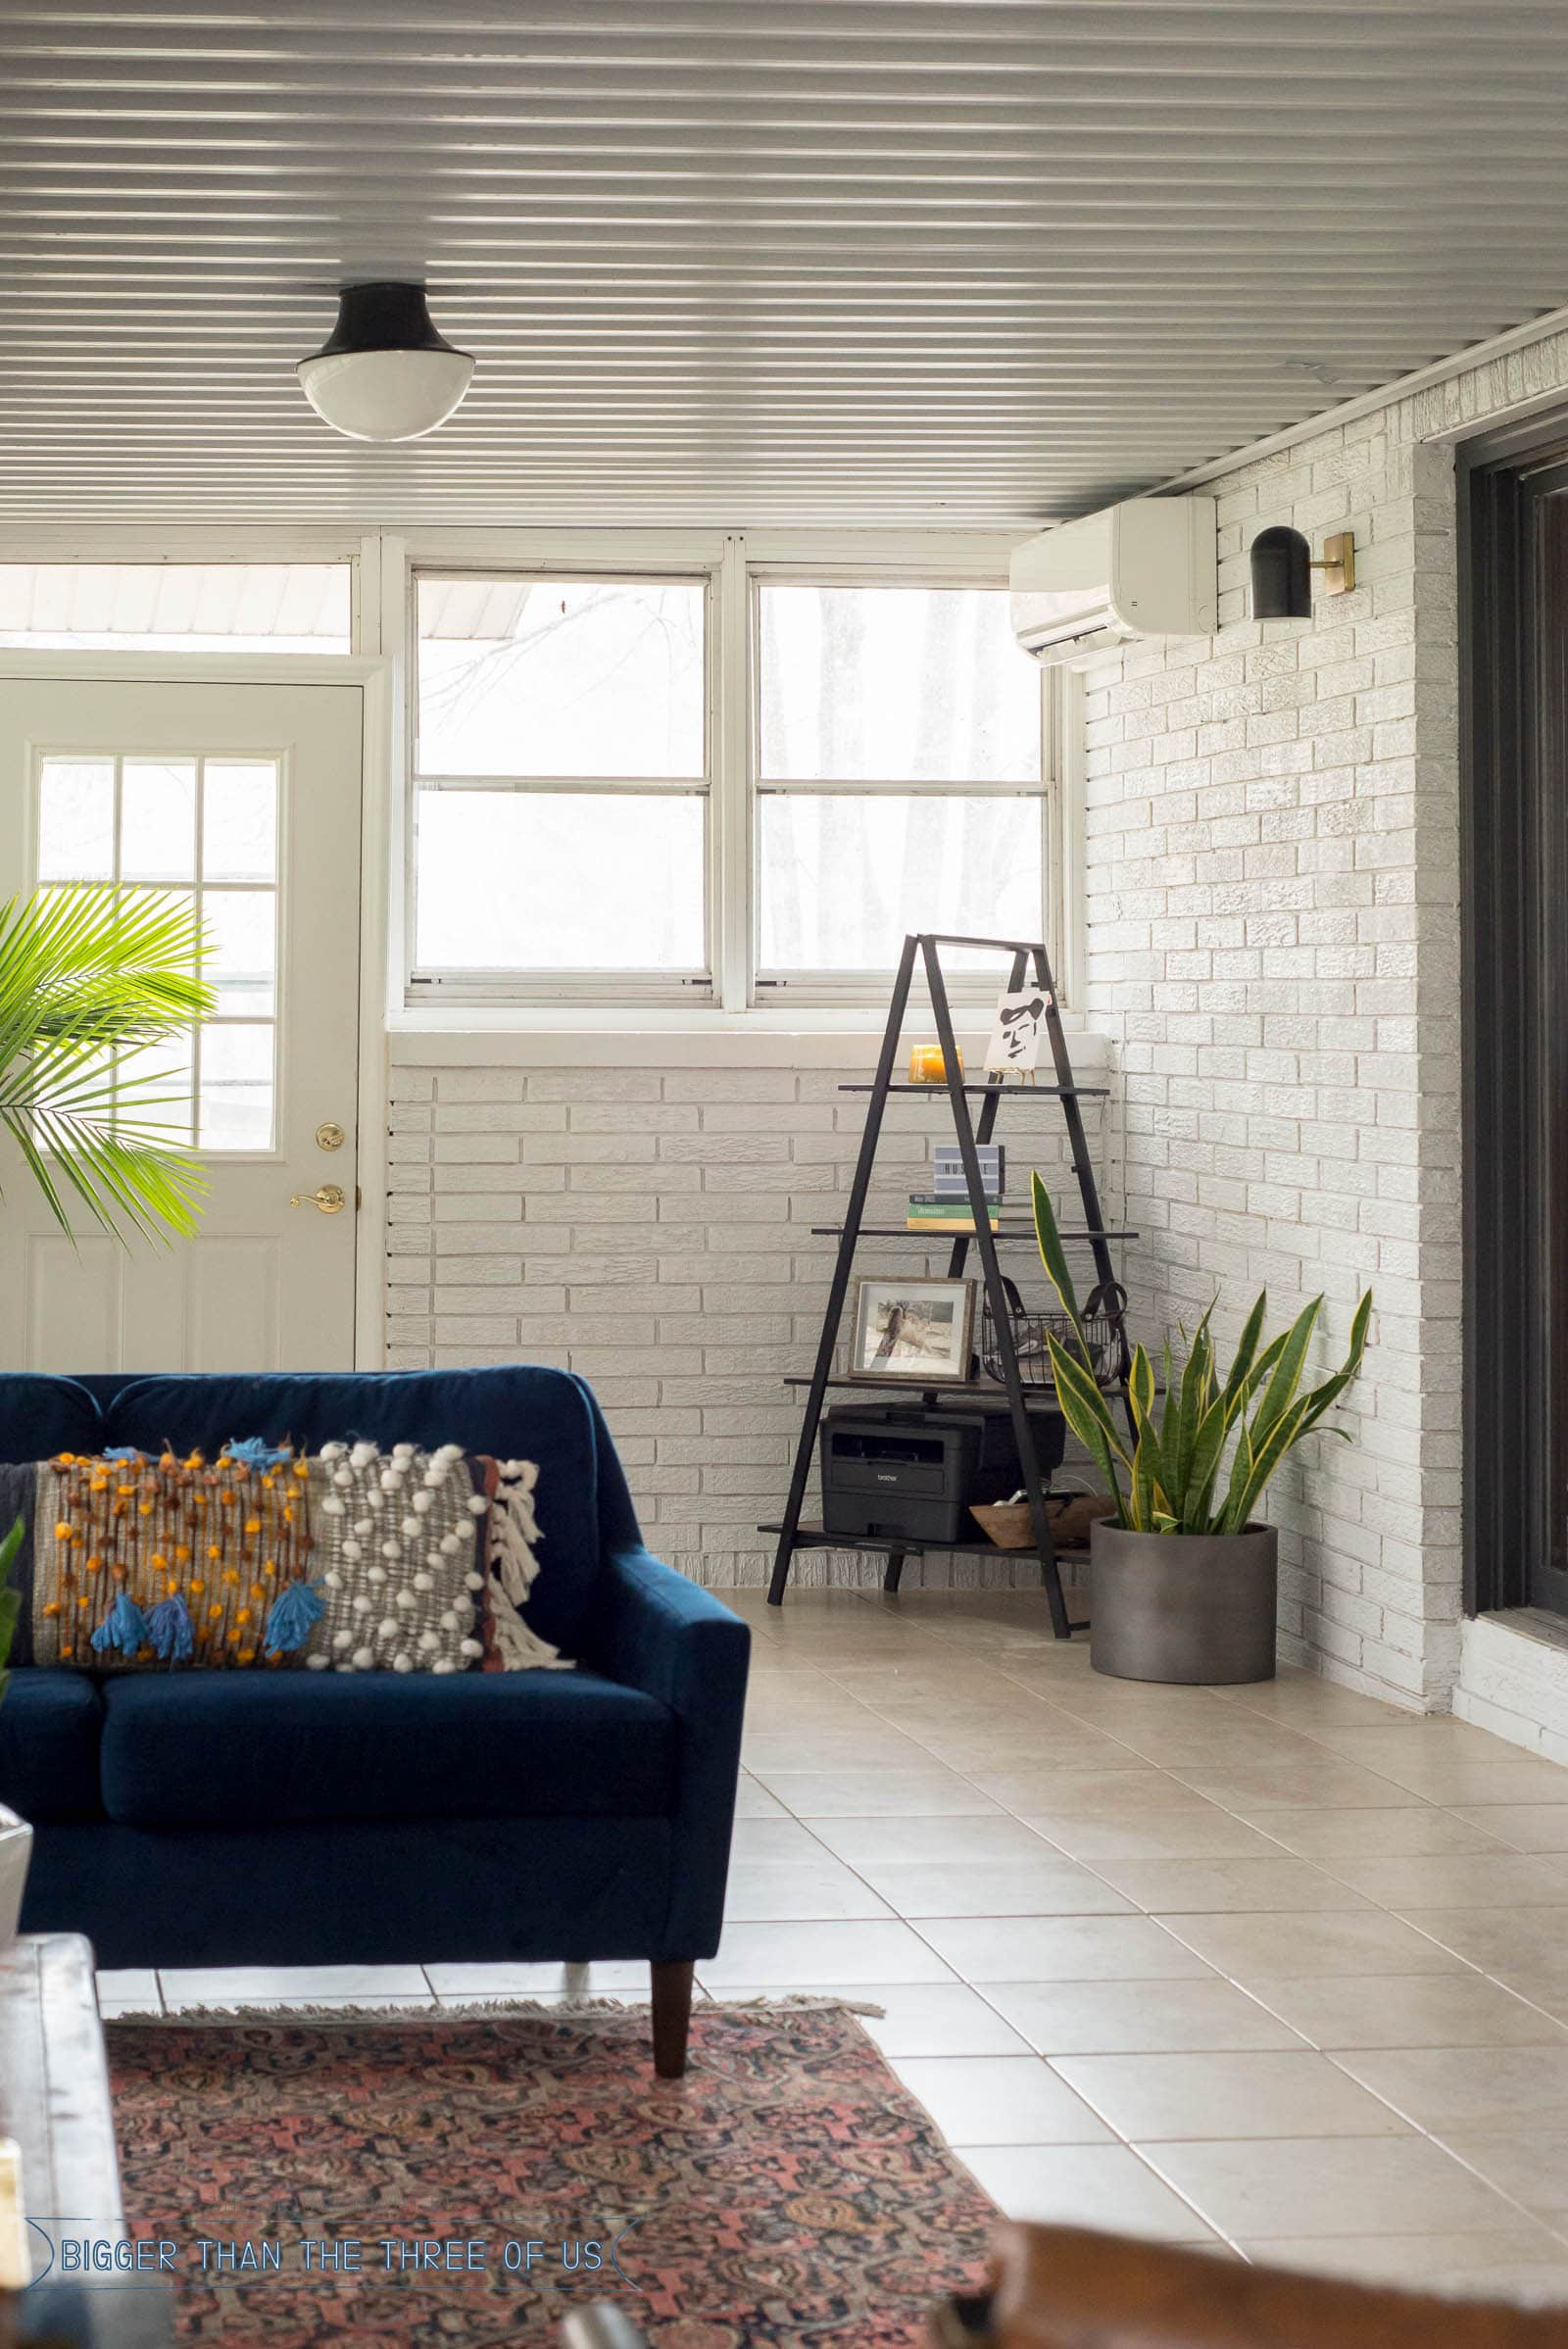 A frame shelf in the corner of a white painted sunroom with plants around it.